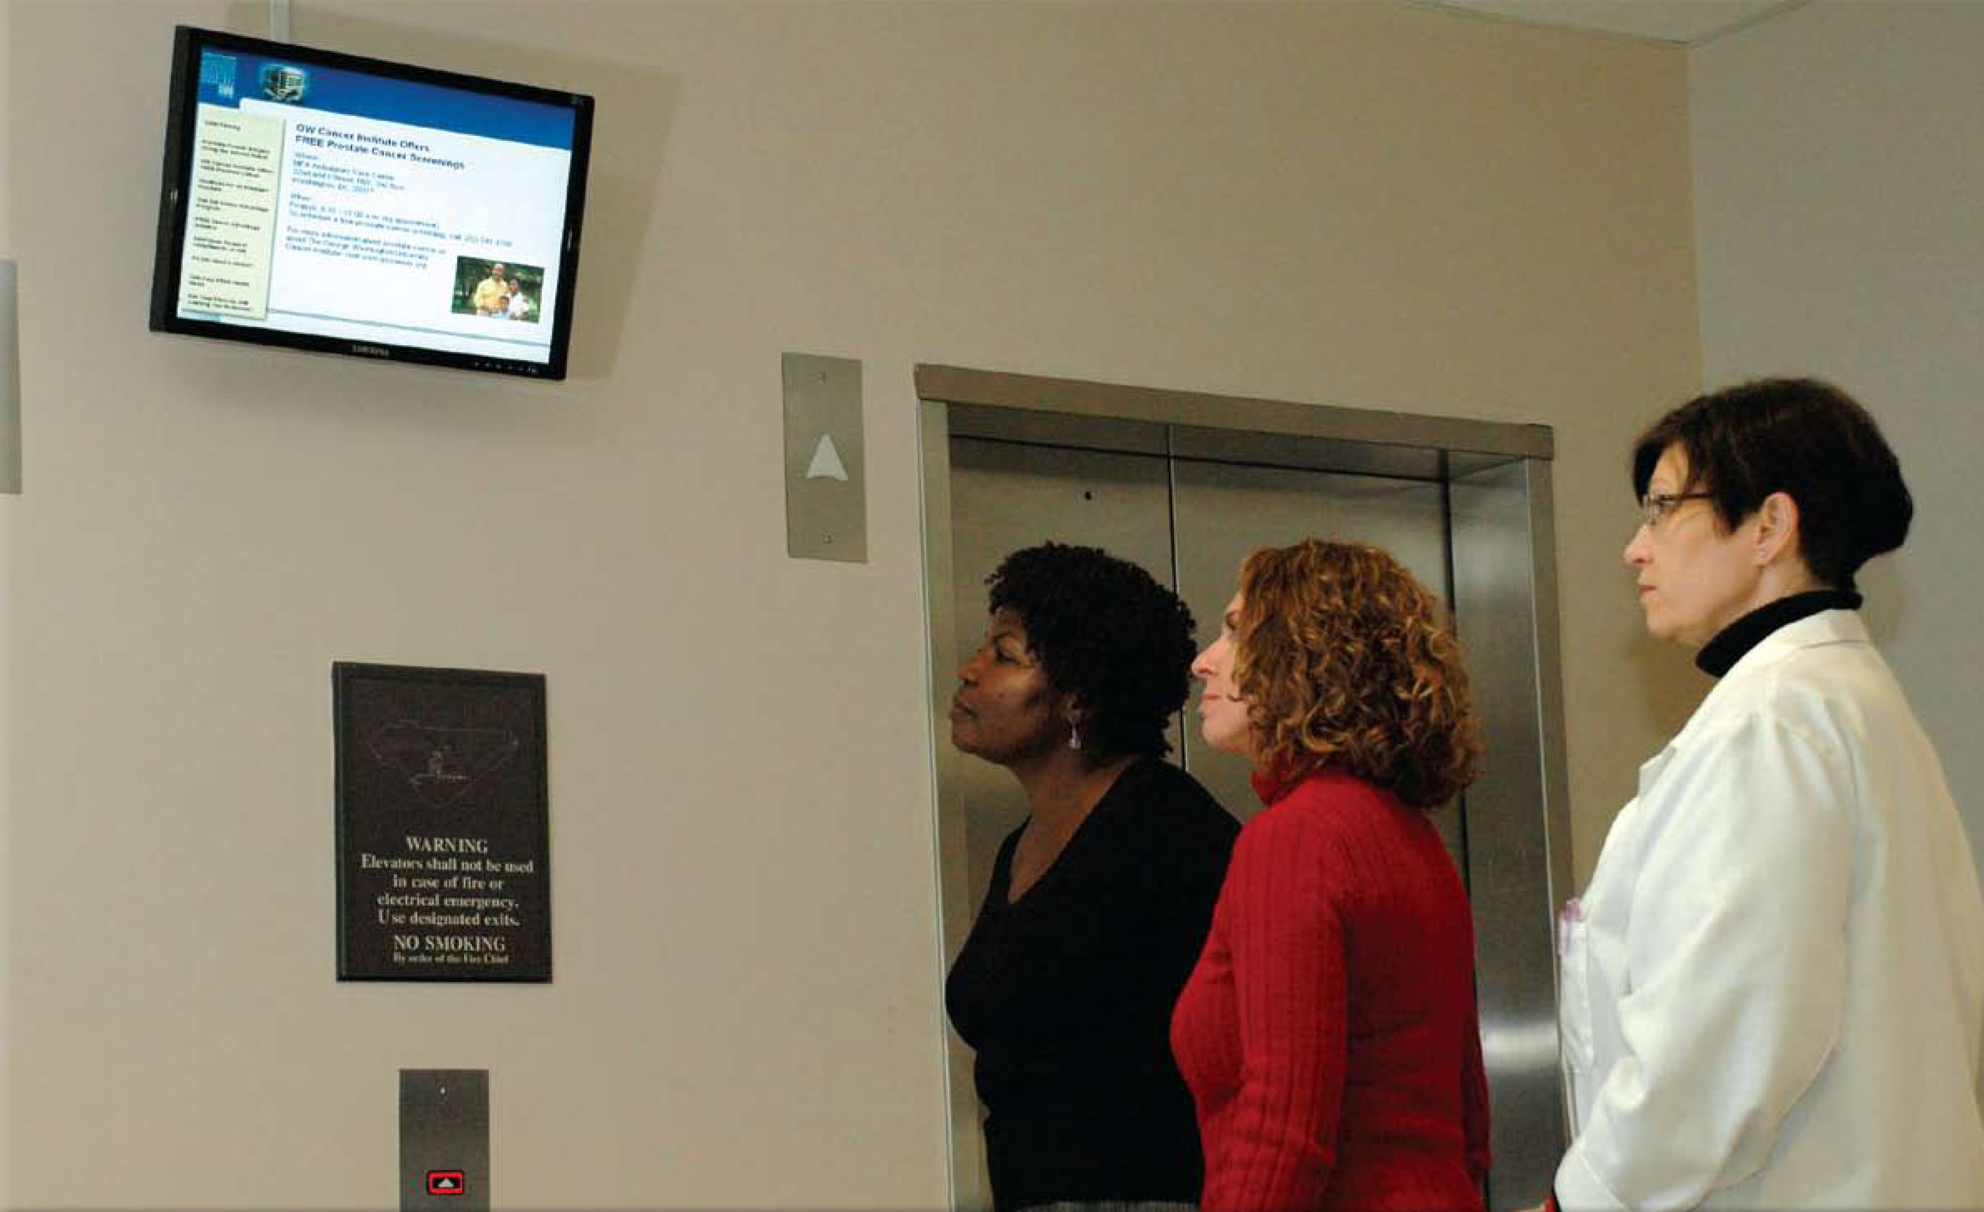 3 Ways to Use Digital Signage at Your Hospital